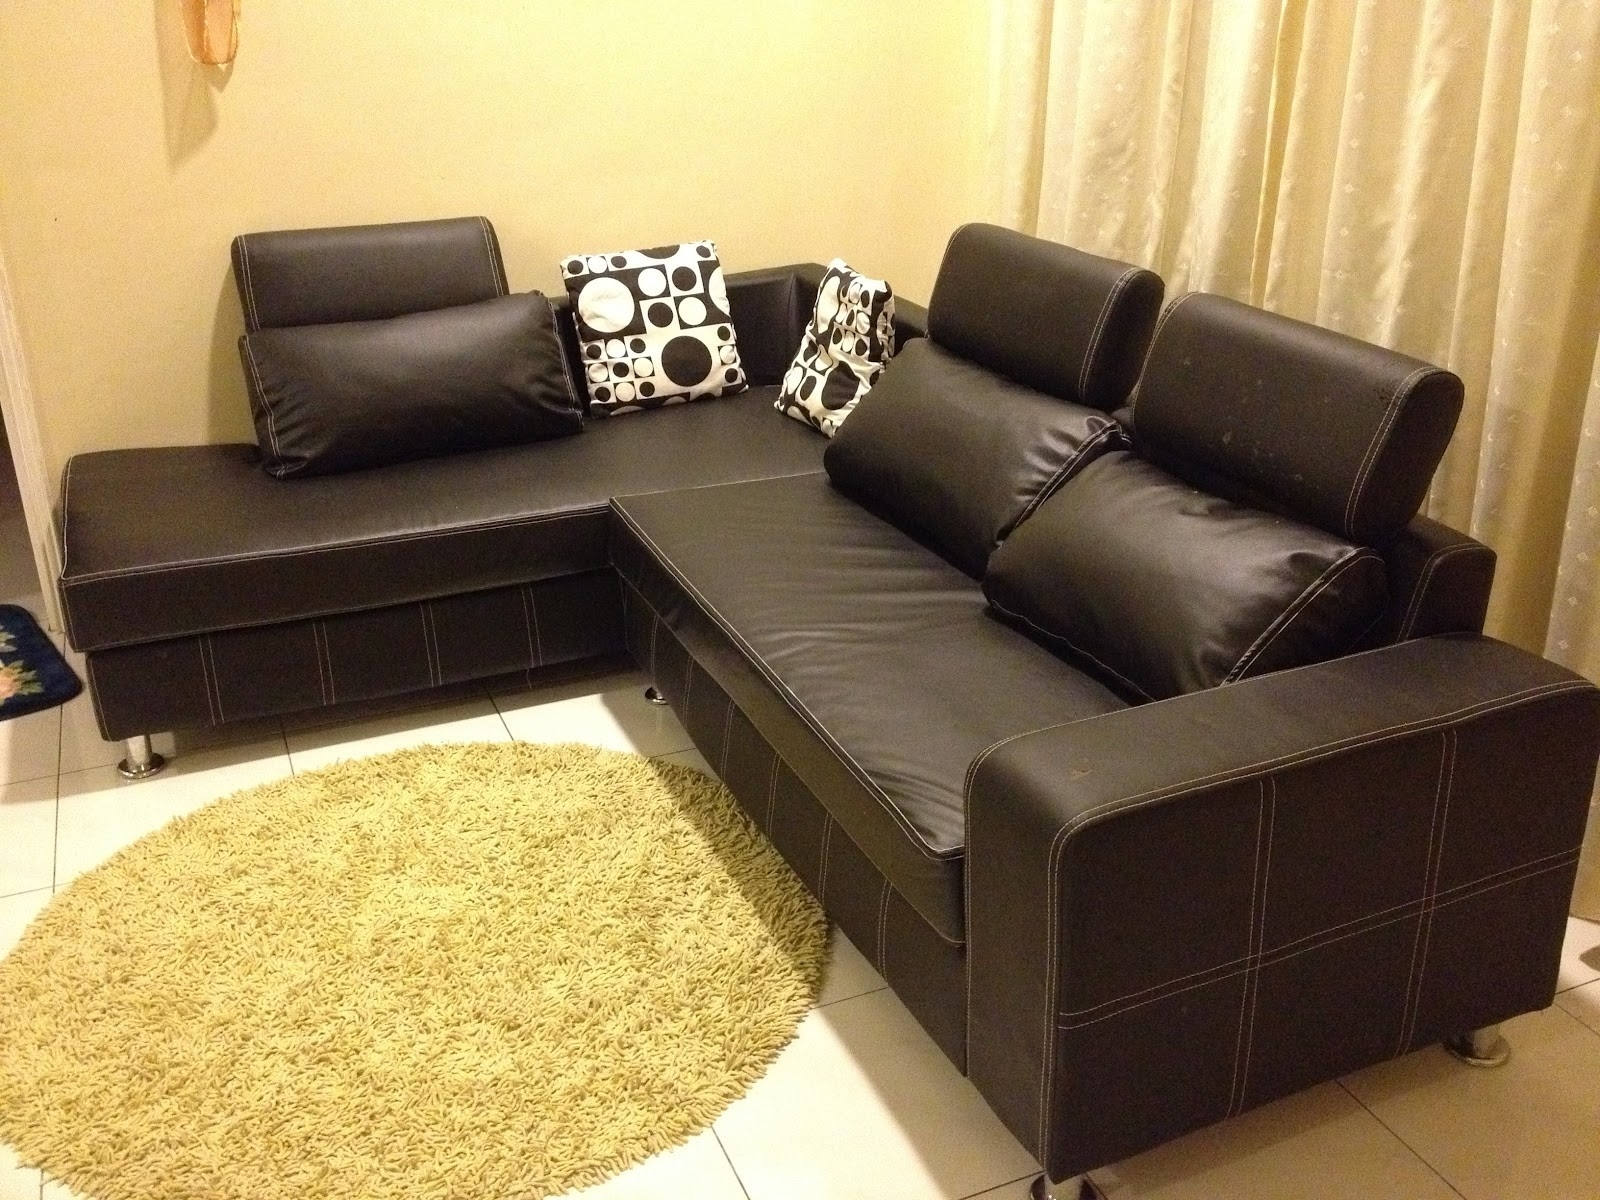 Widely Used Sofa : Used Sectional Sofas Por Oversized Sectional Sofa With For Used Sectional Sofas (View 4 of 20)